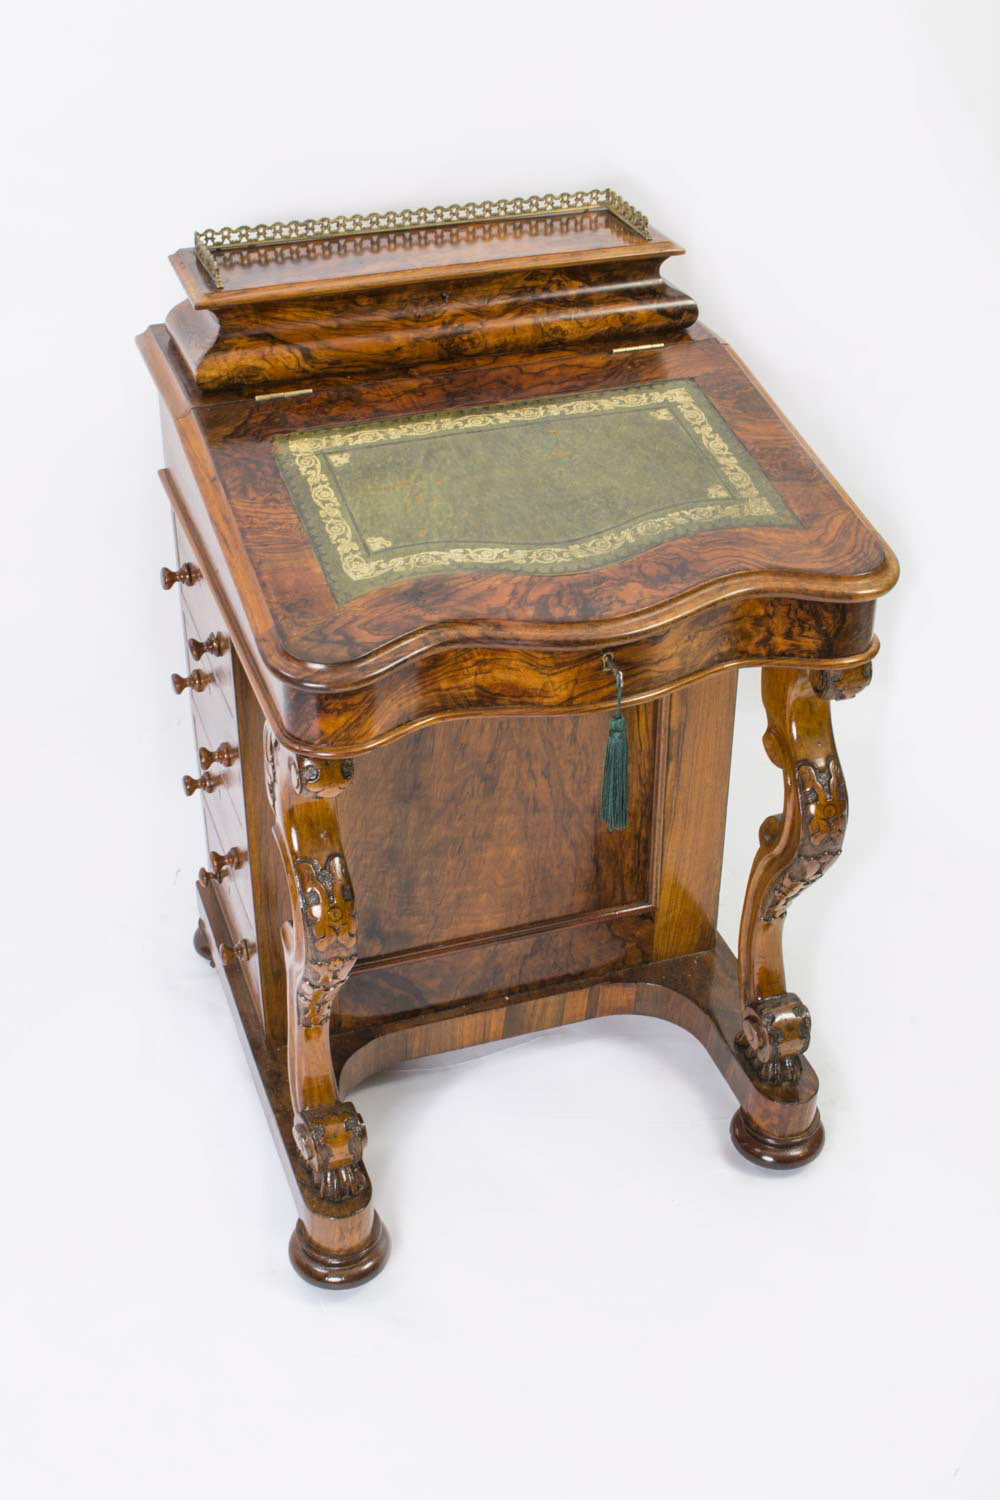 - Antique Victorian Burr Walnut Davenport Desk C.1870 Ref. No. 06208